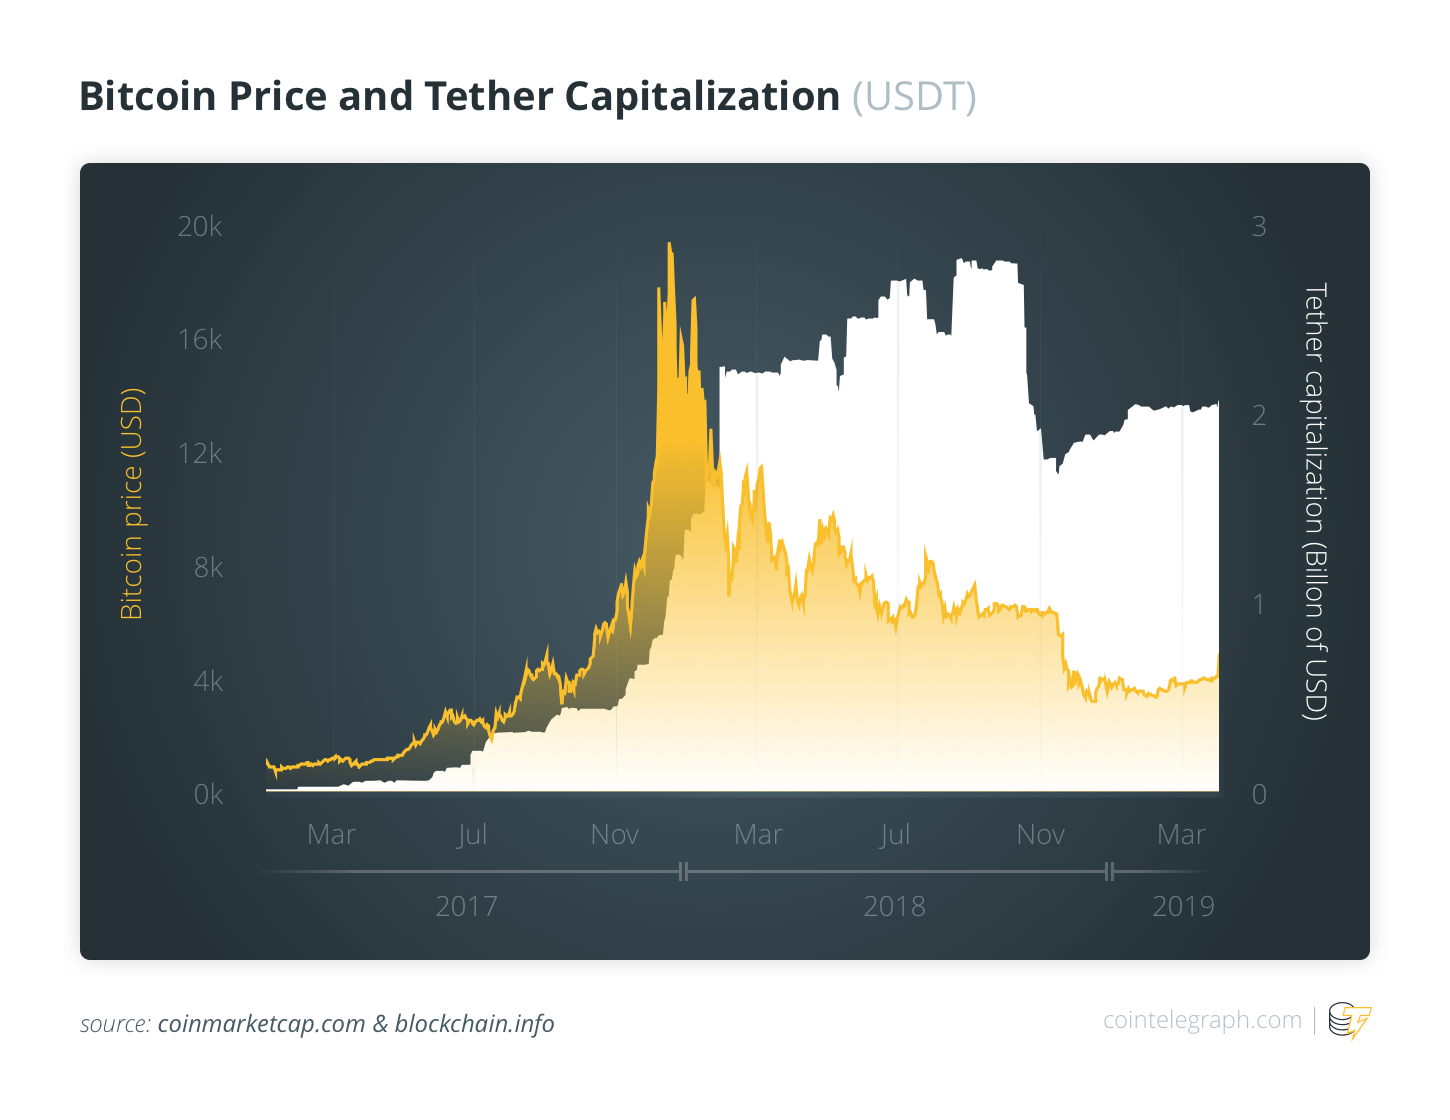 BTC Price and Techer Capitallization